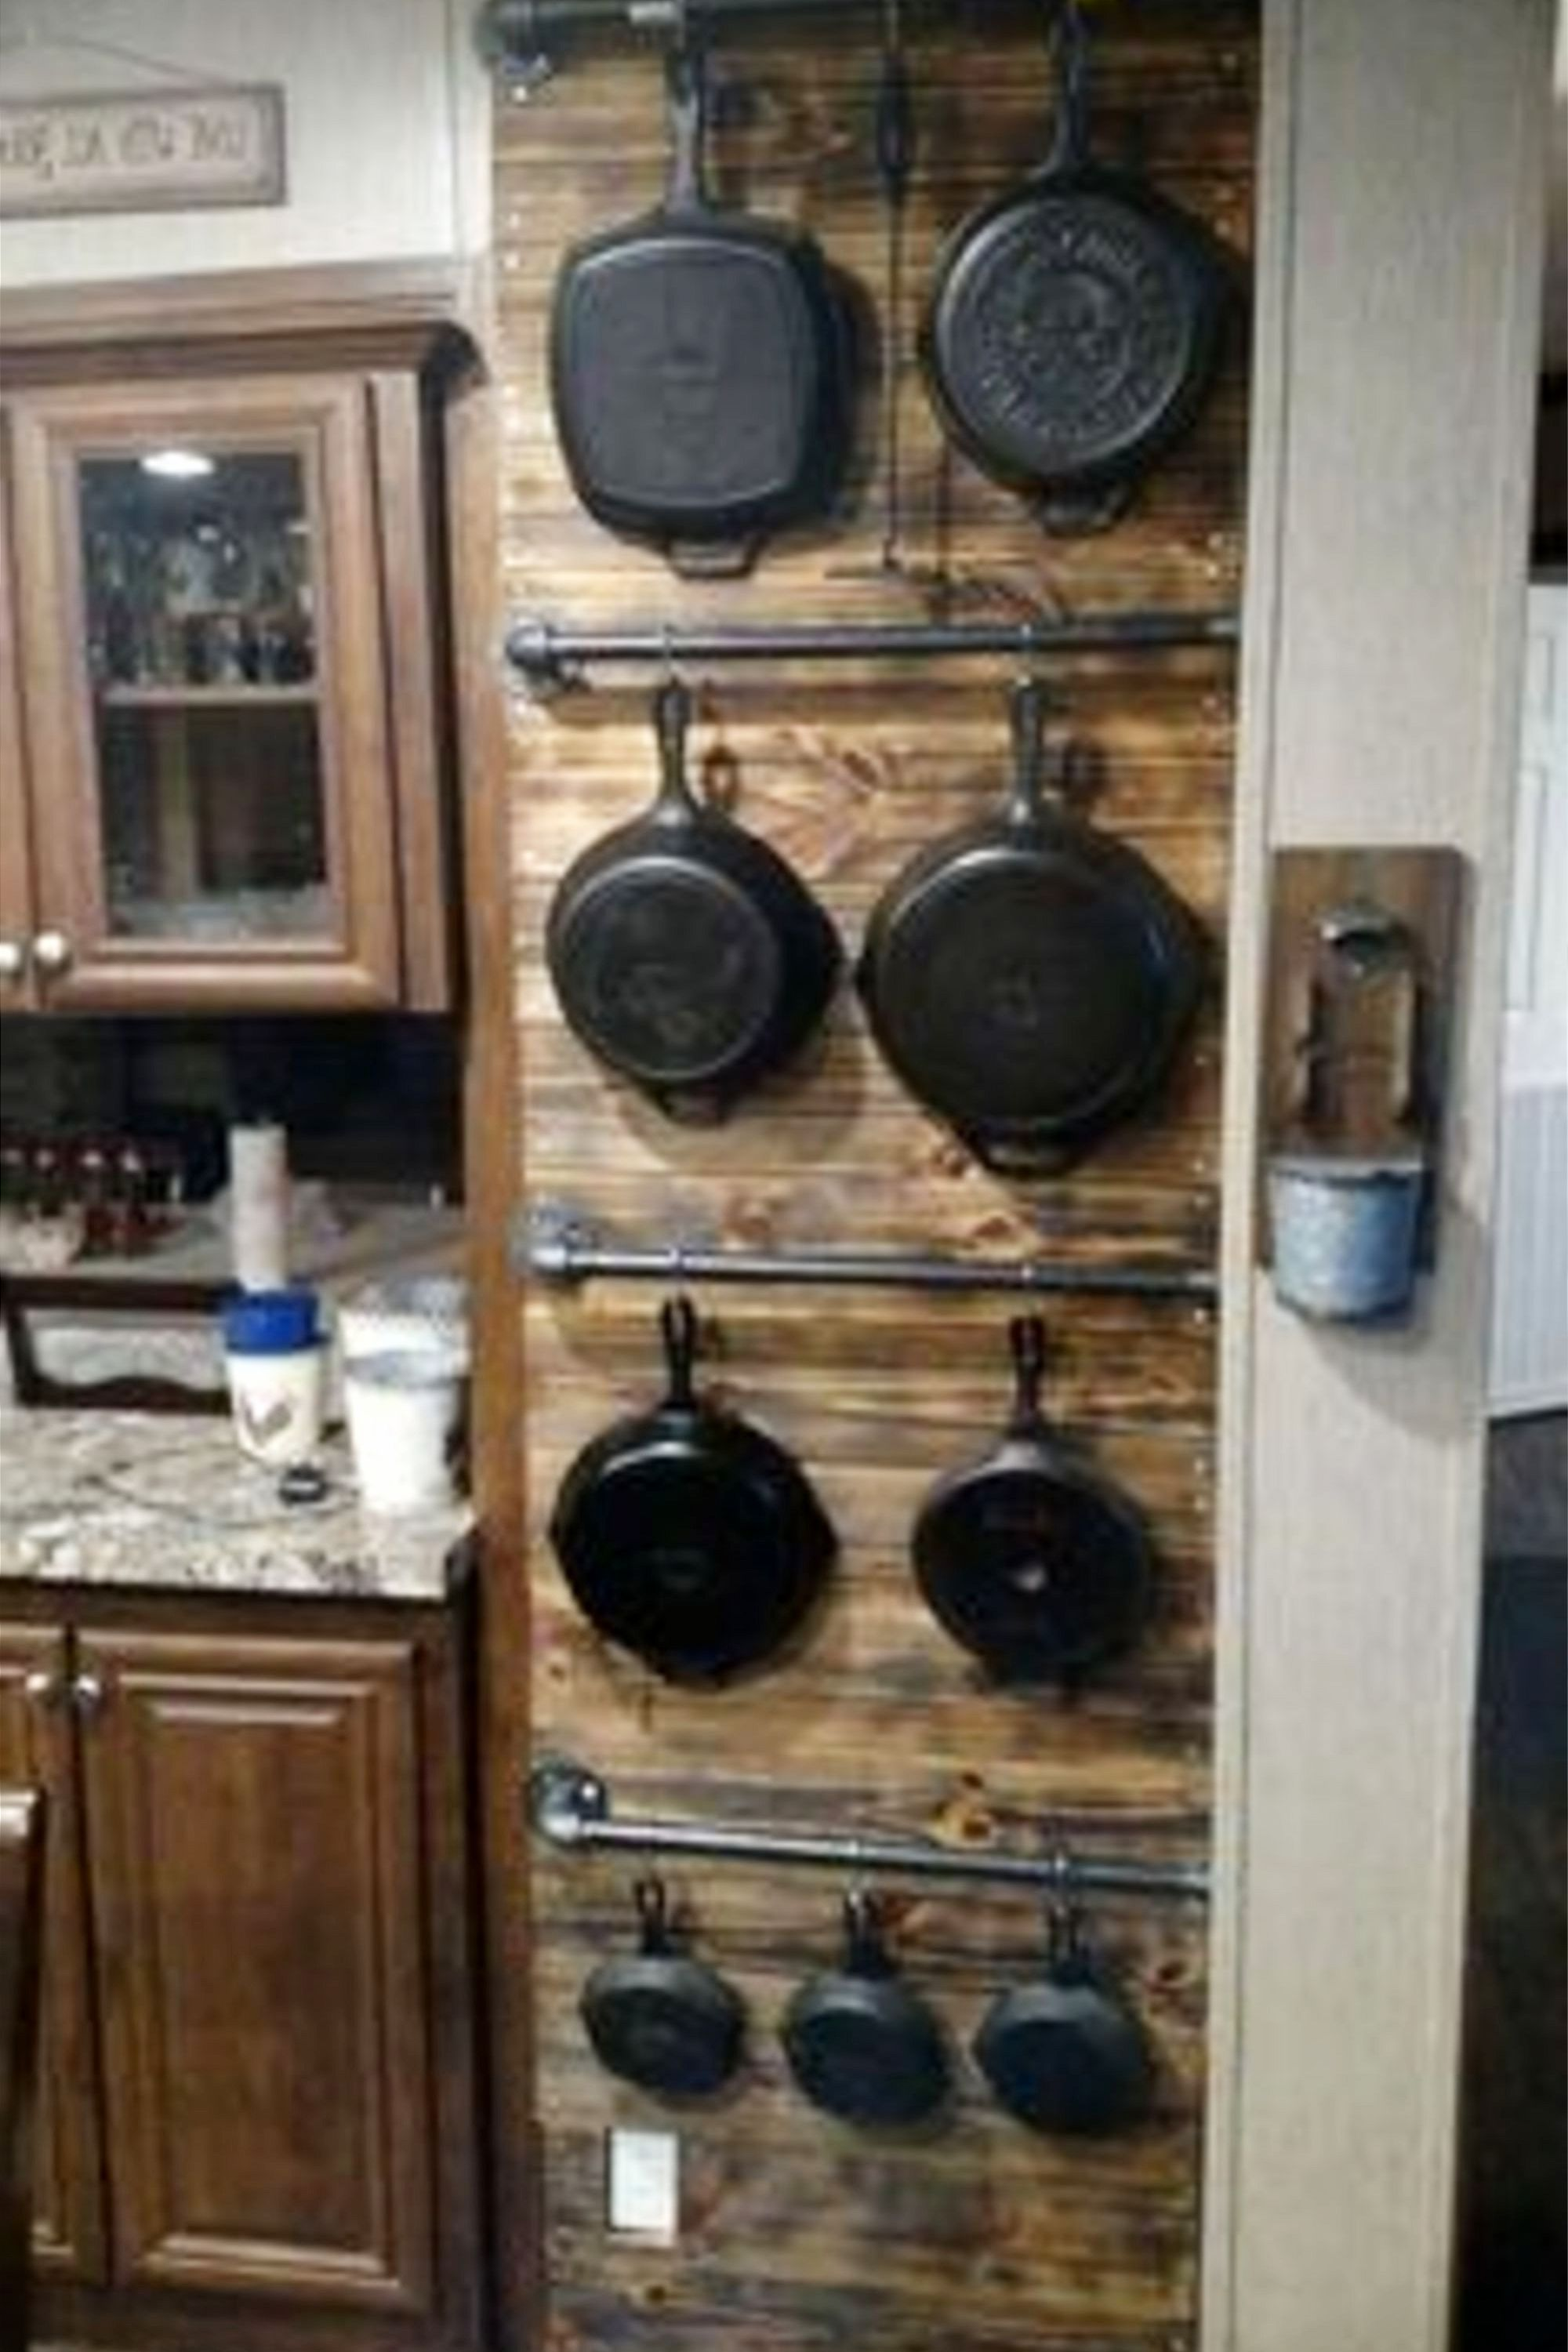 Easy Diy Rustic Home Decor Ideas On A Budget Clever Cabin Kitchens Old Fashioned Kitchen Wall